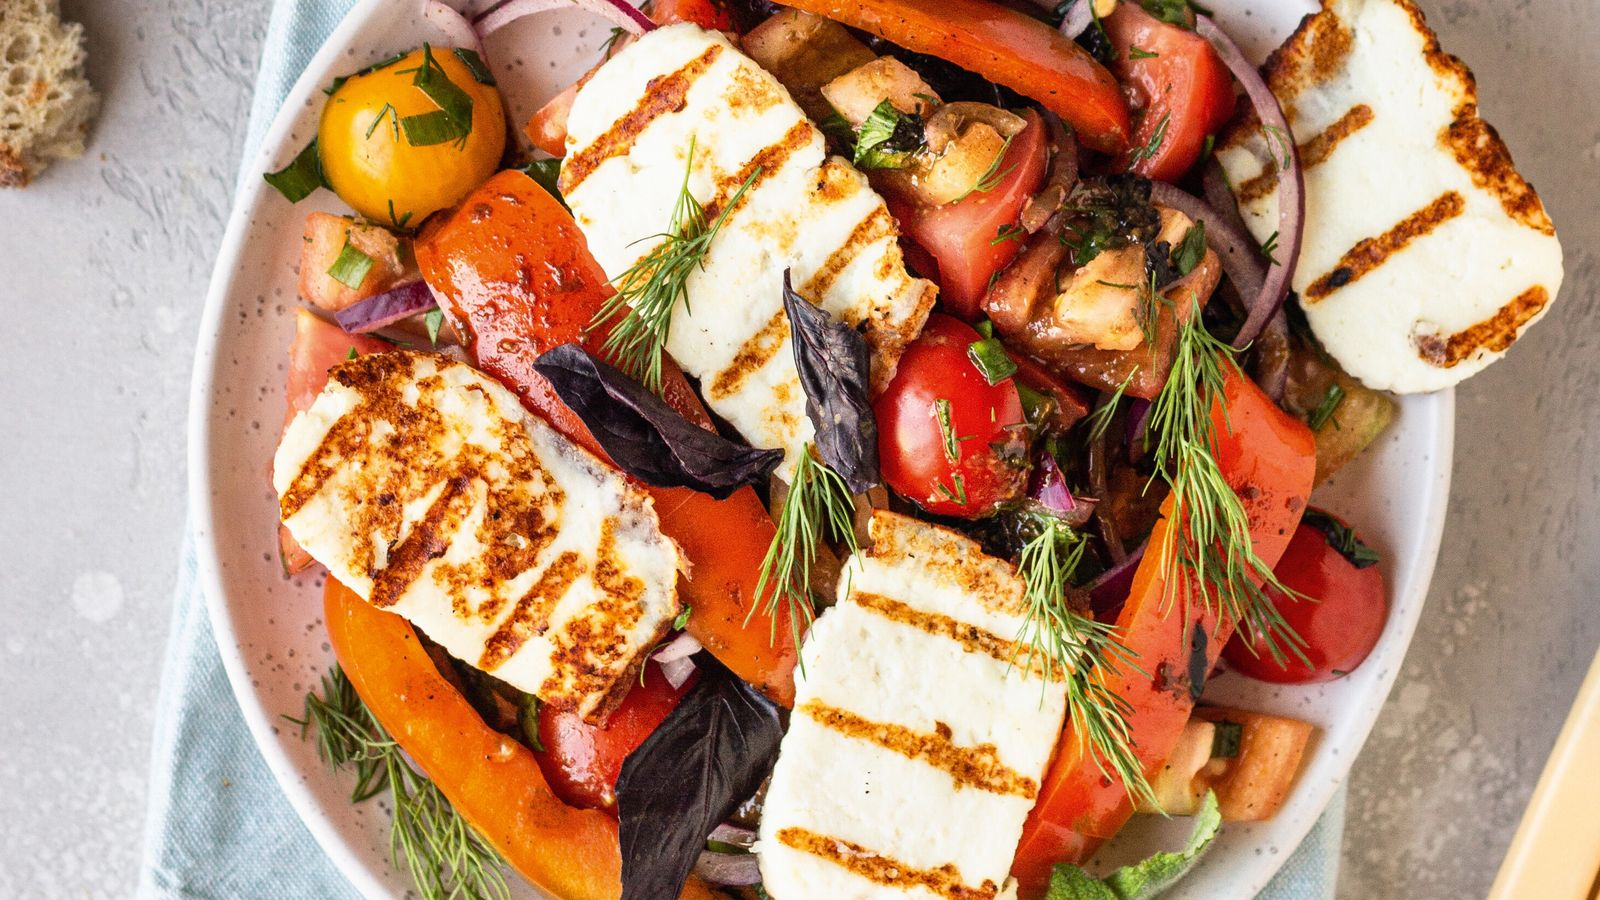 Tomato, red pepper and onion salad with grilled halloumi.